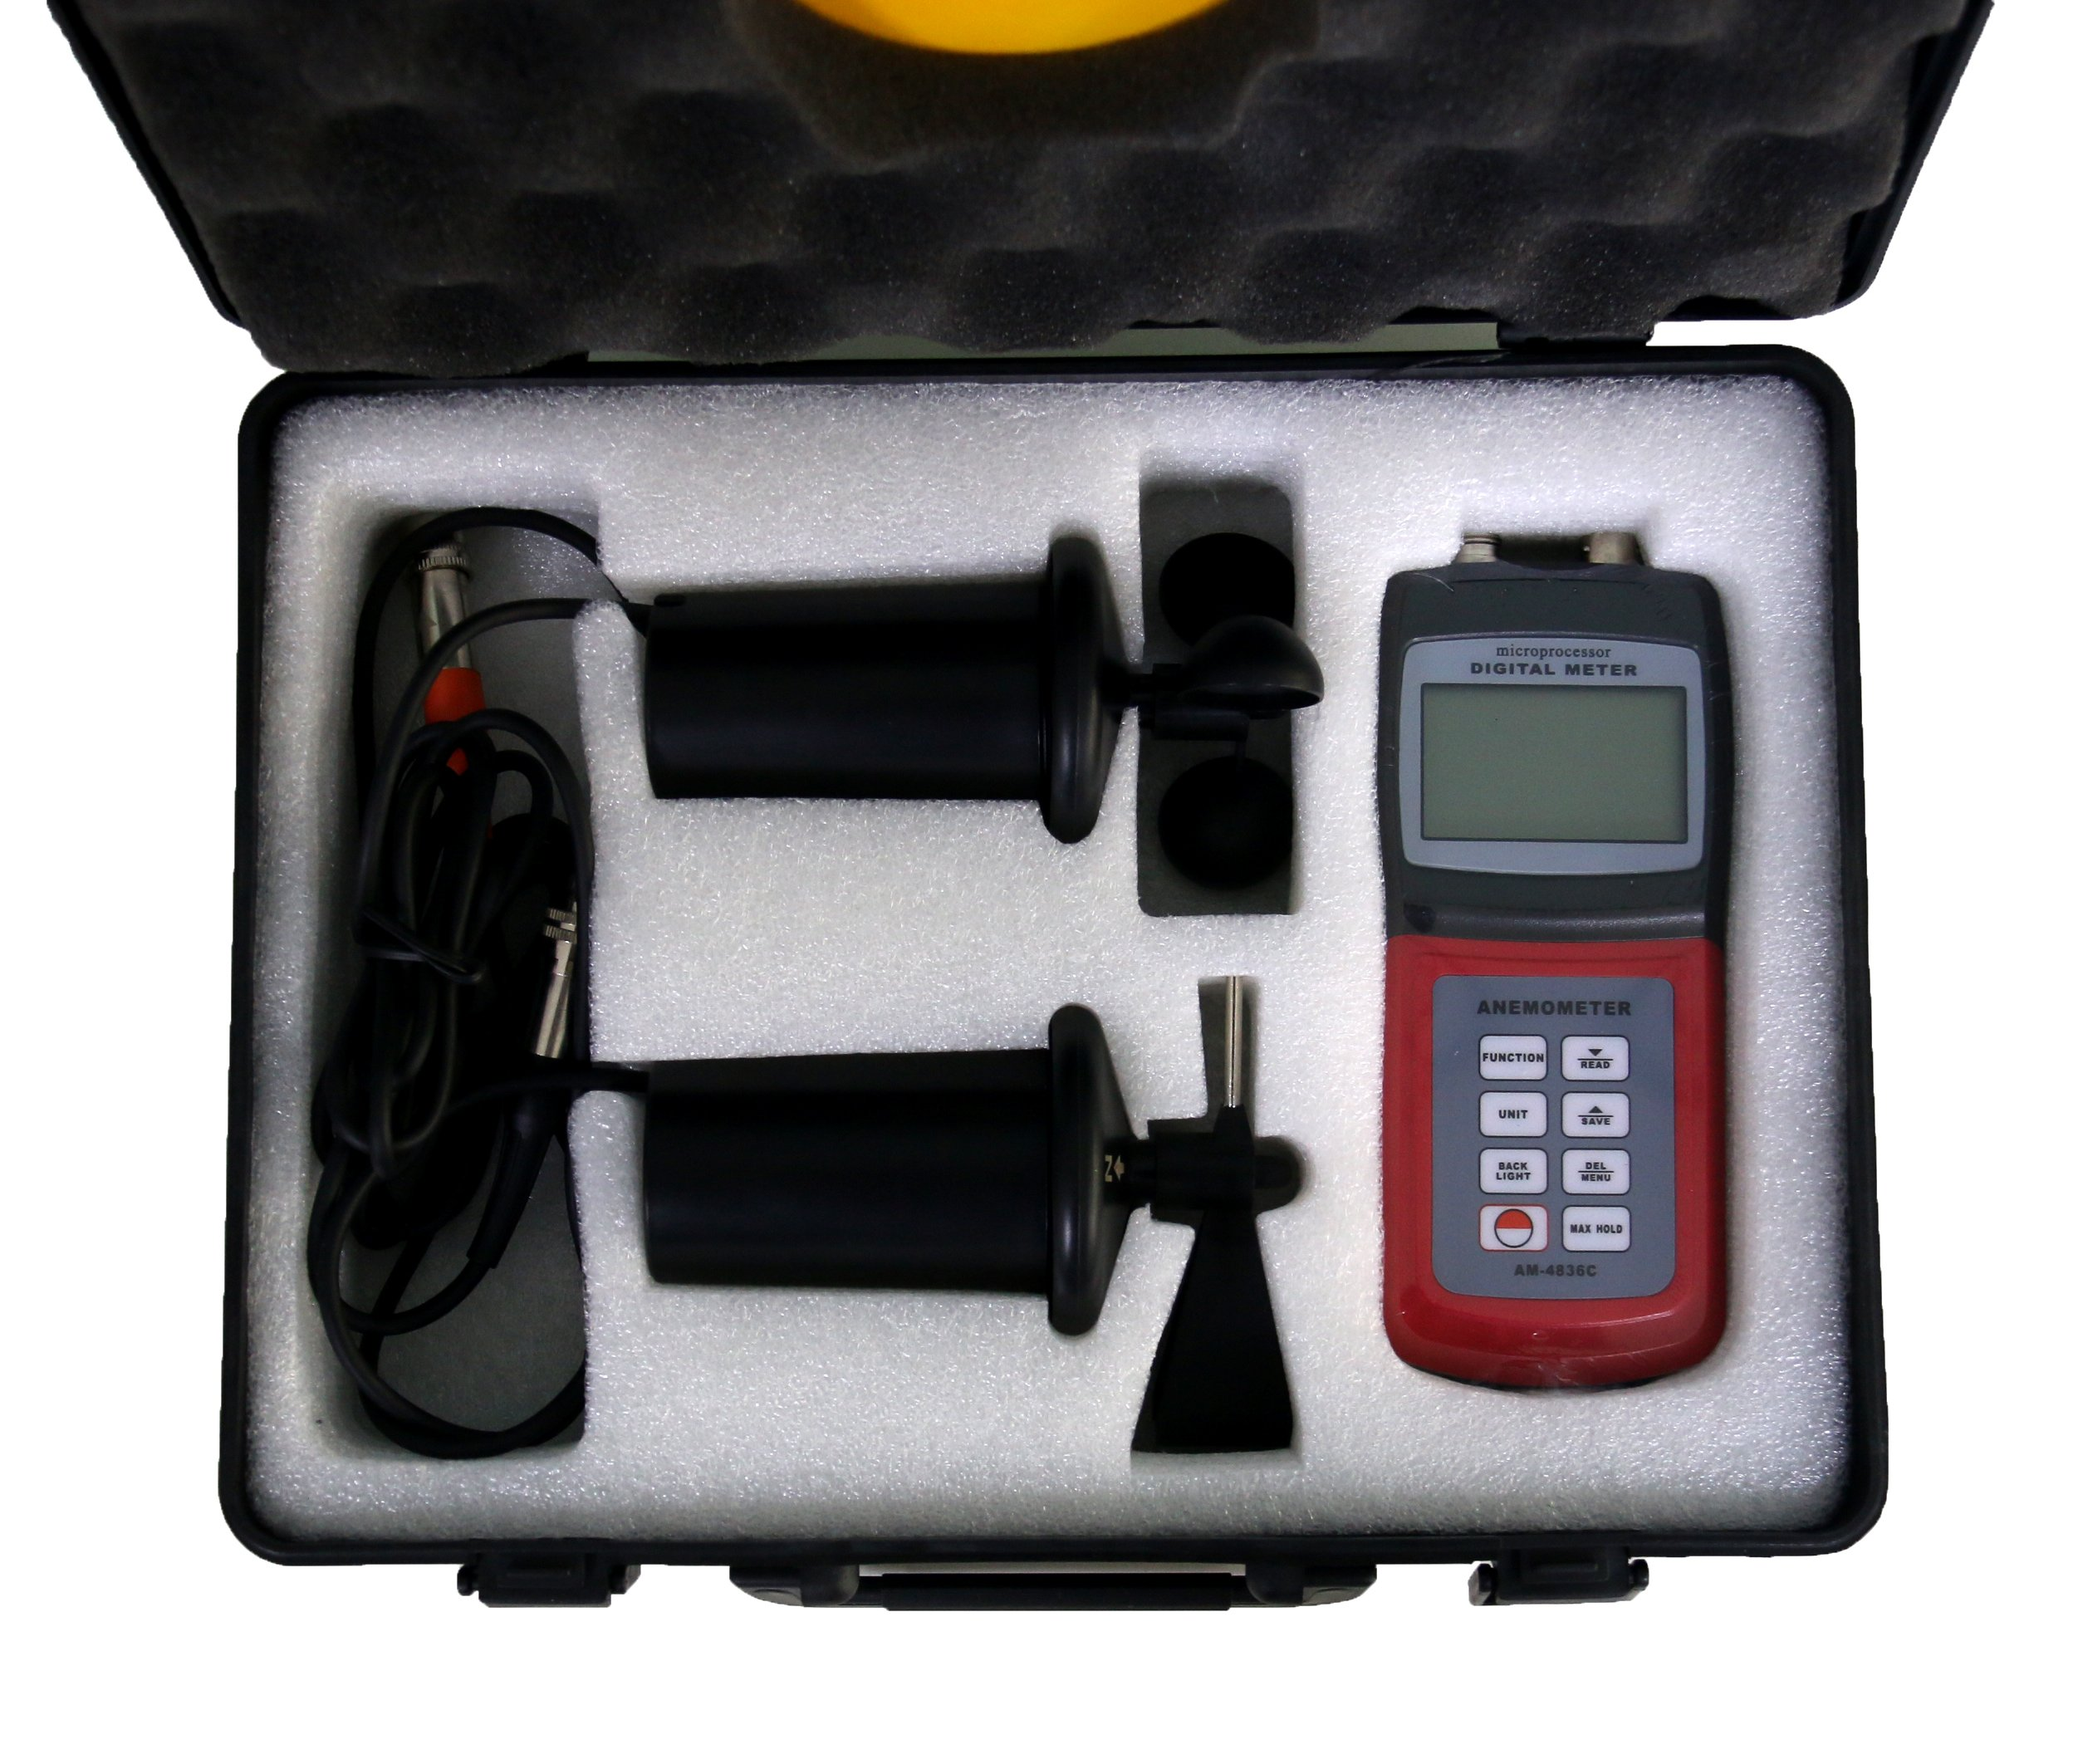 BYQTEC AM-4836C Digital Multifunction Anemometer Wind Speed Meter for Measuring Air Velocity Flow, Temperature, Direction and Wind Speed by BYQTEC (Image #8)